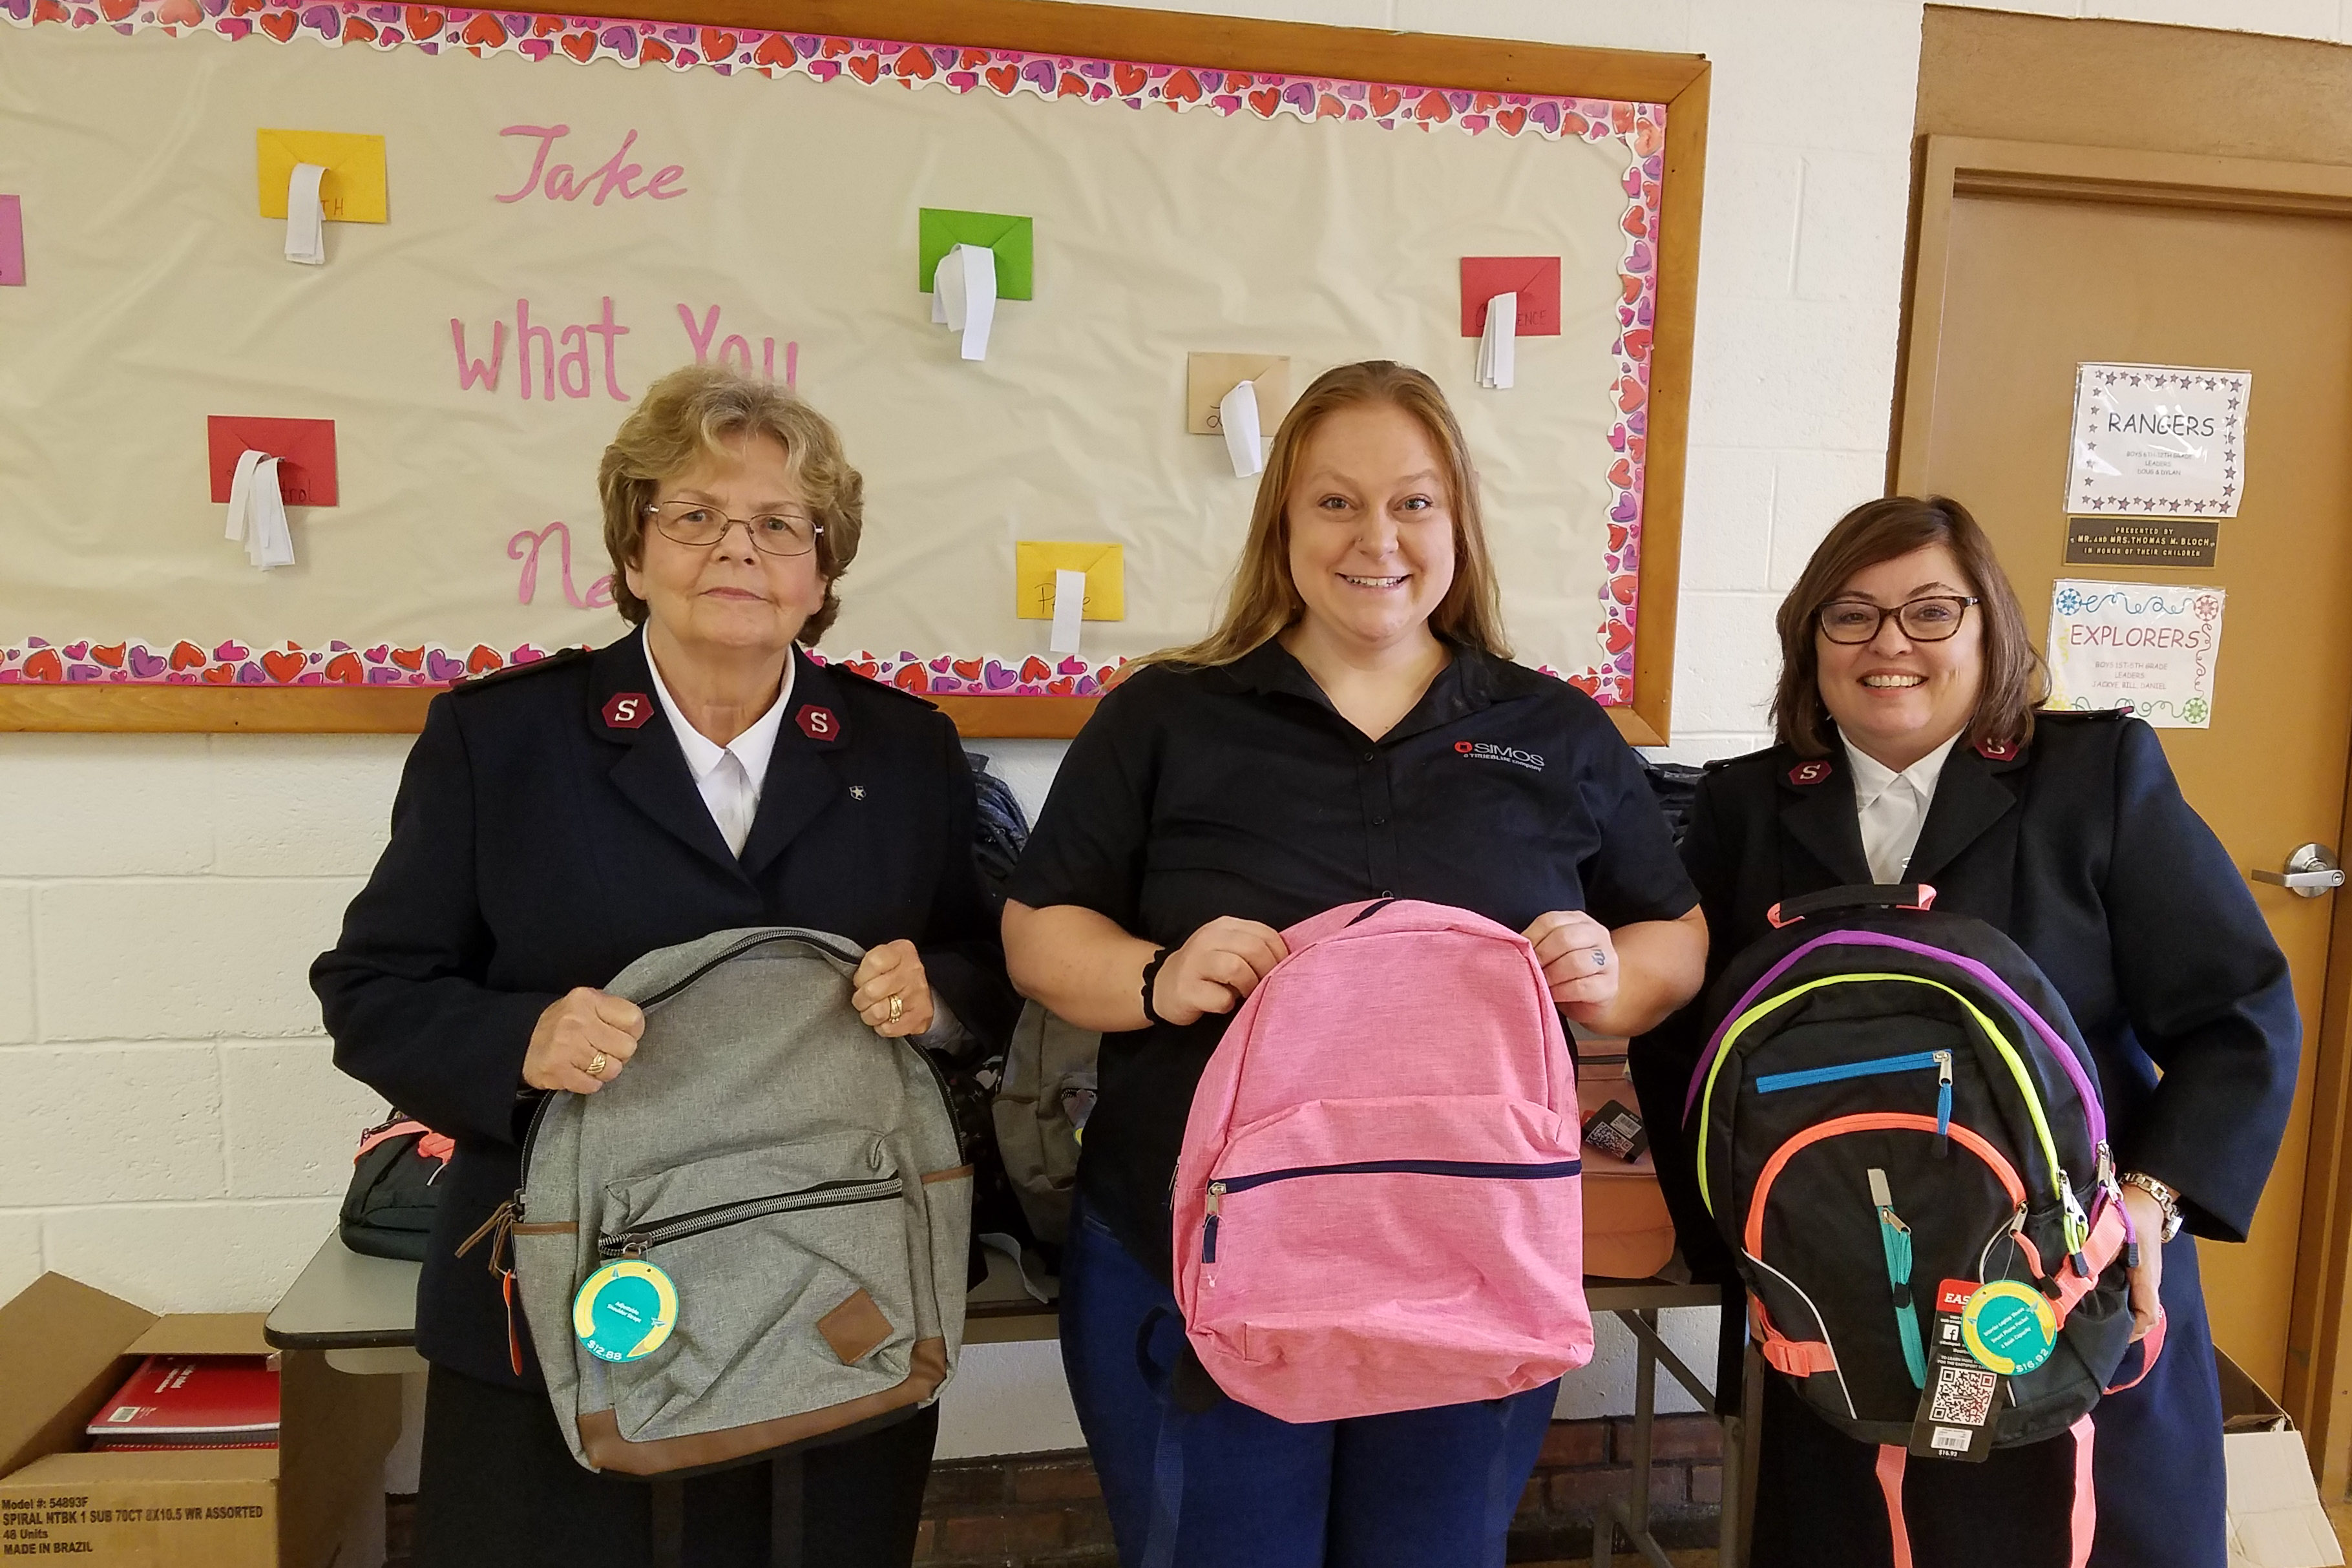 Kyla Miller joined forces with the Salvation Army in Wheeling to put together two dozen backpacks filled with spiral notebooks, folders, pencil bags, calculators, index cards, crayons, markers, glue and erasers. And it all started with a chance meeting in Target.